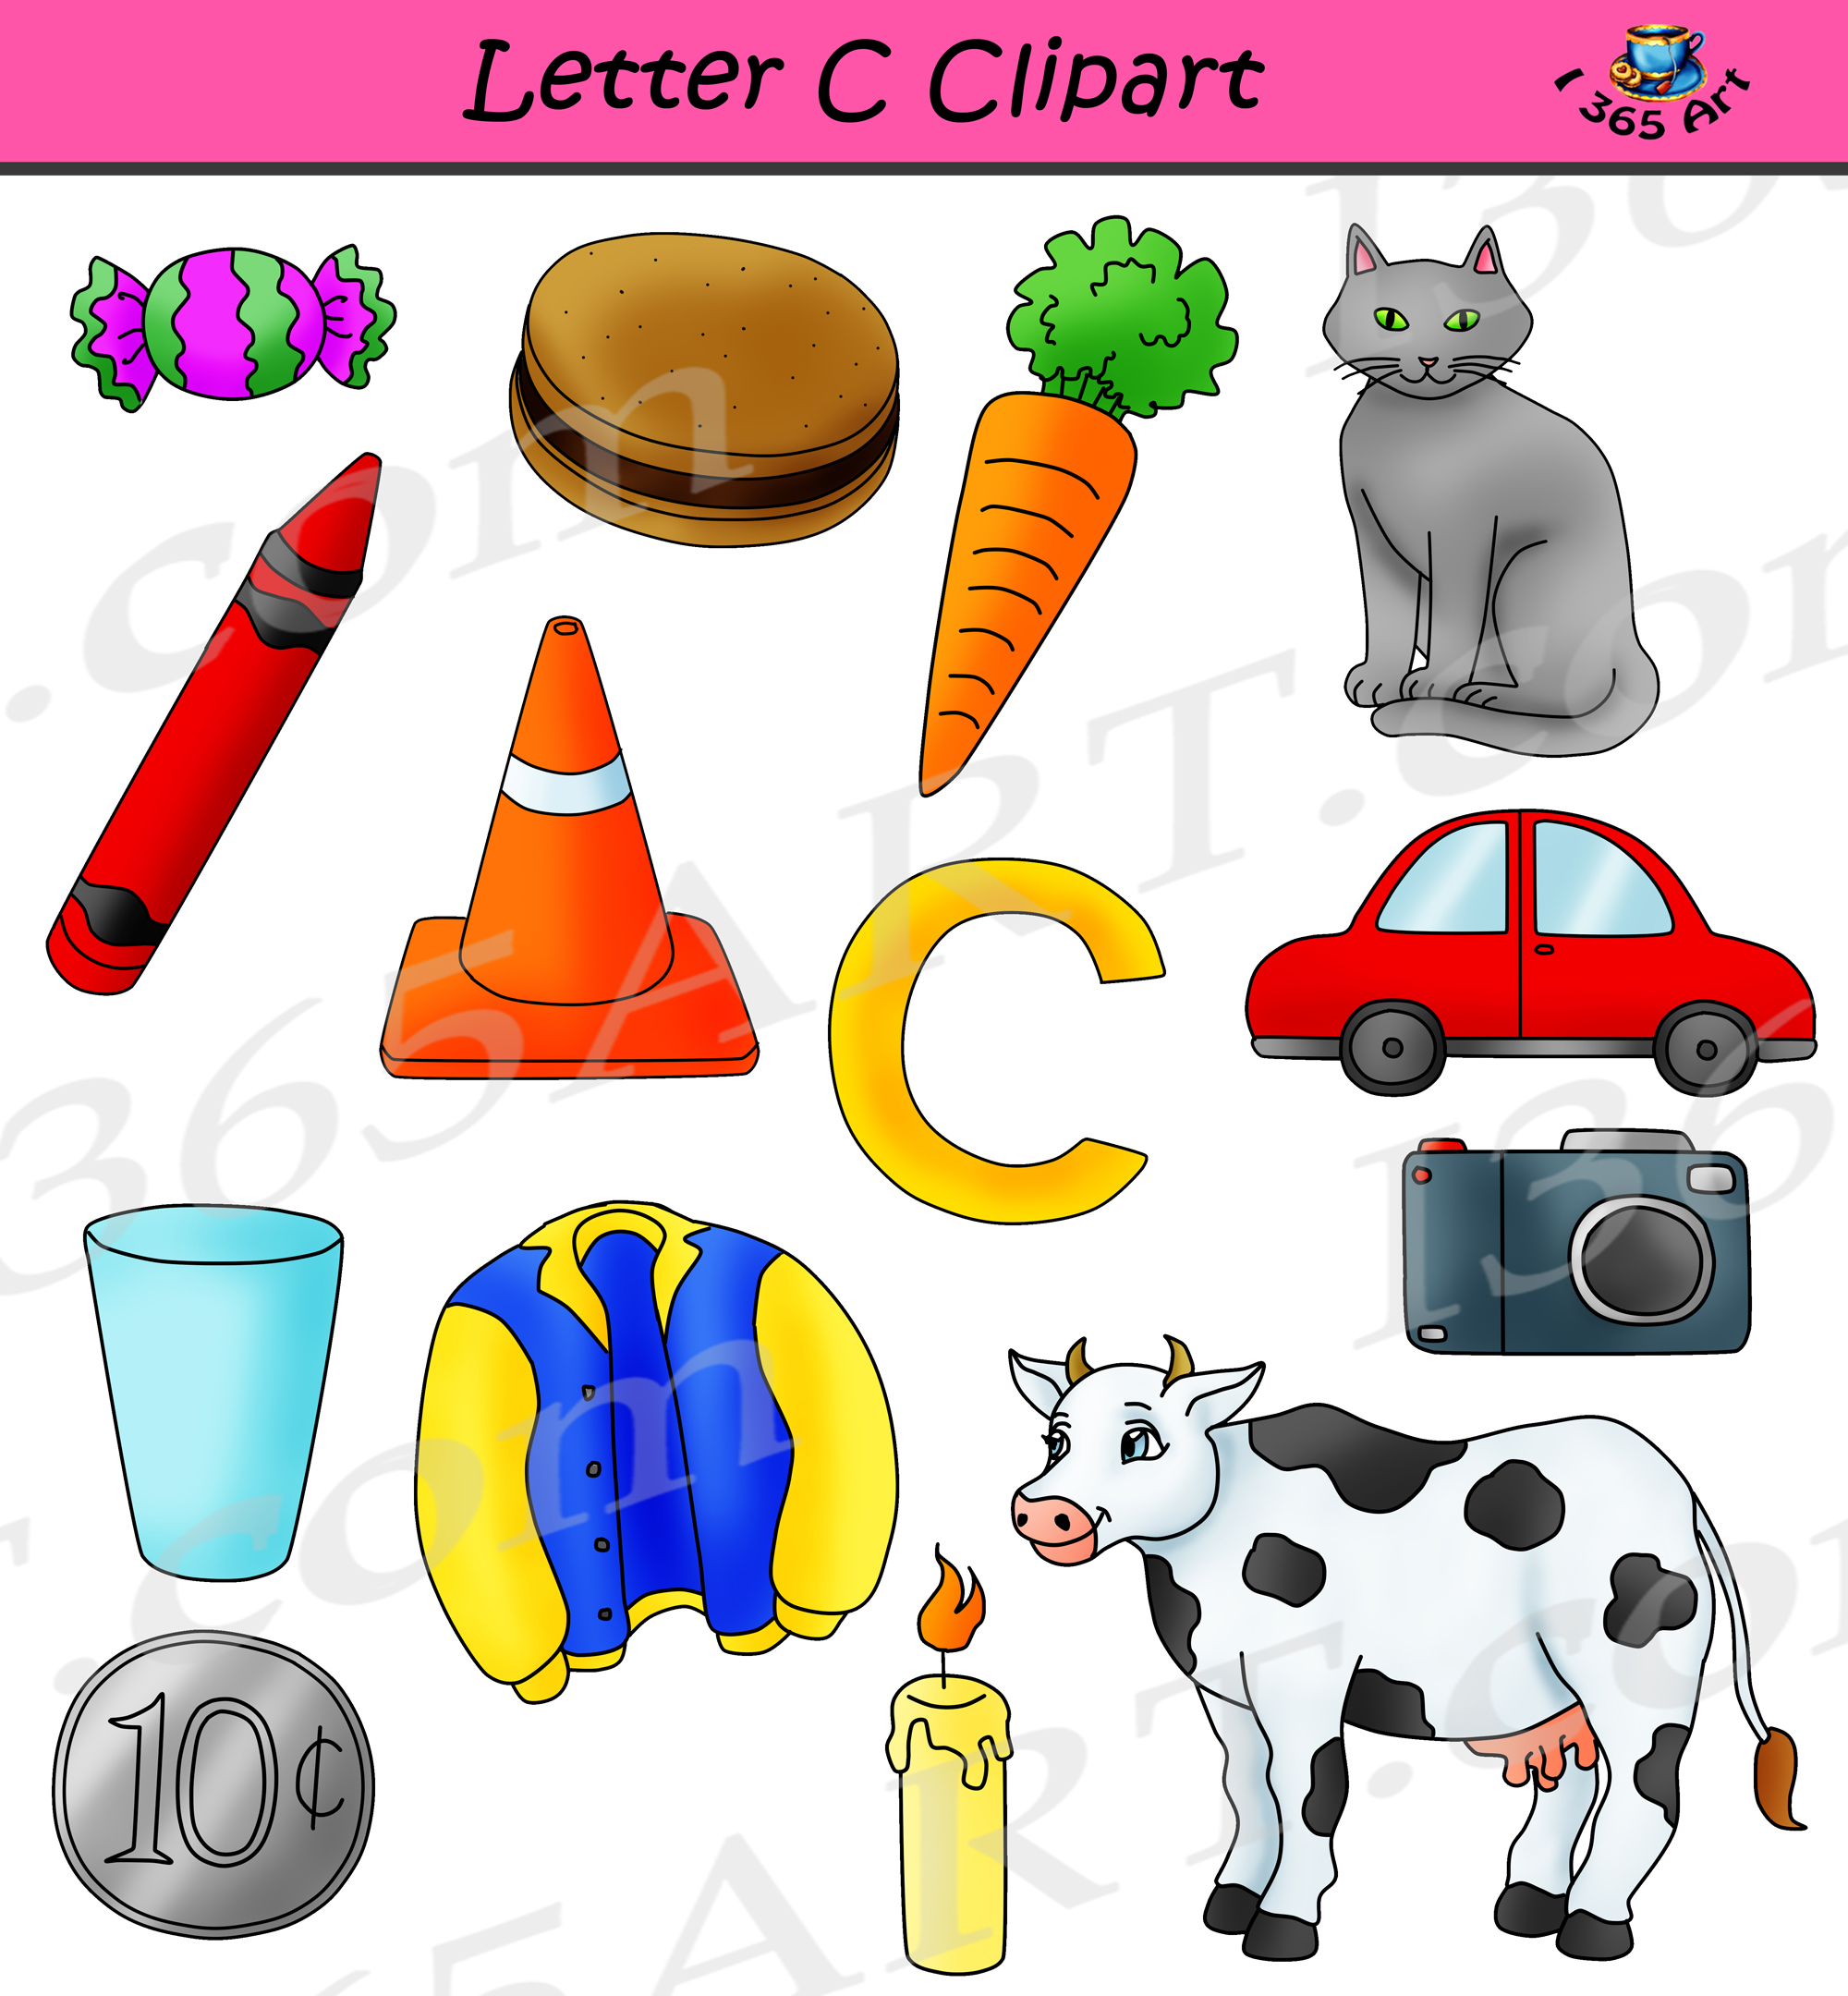 Things that start with the letter c clipart png royalty free download Letter C Clipart - Commercial-Use png royalty free download